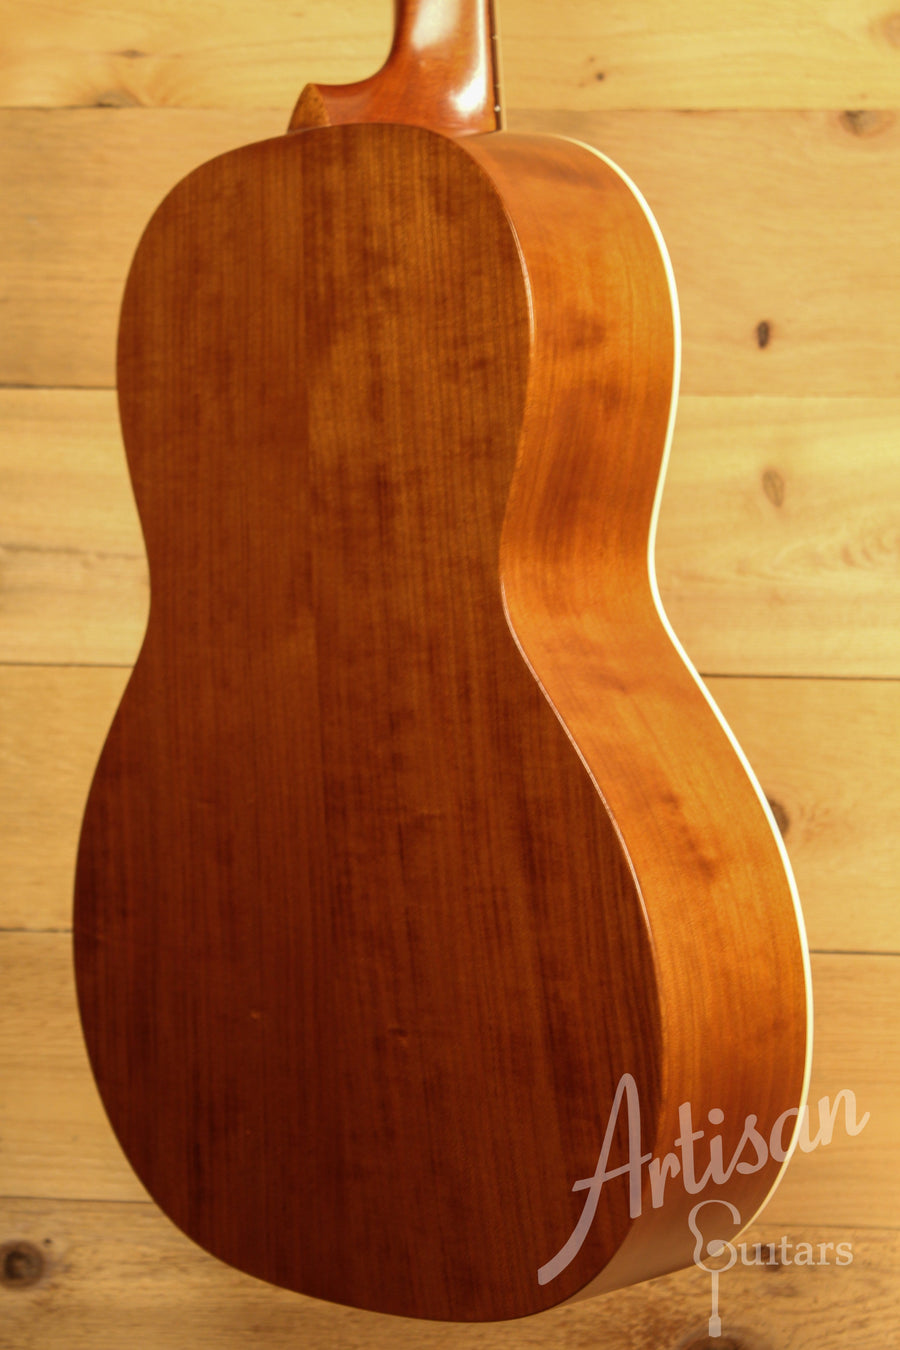 Waterloo WL-S Ladder Braced Guitar Solid Spruce and Cherry with Vintage Iced Tea Finish ID-11562 - Artisan Guitars